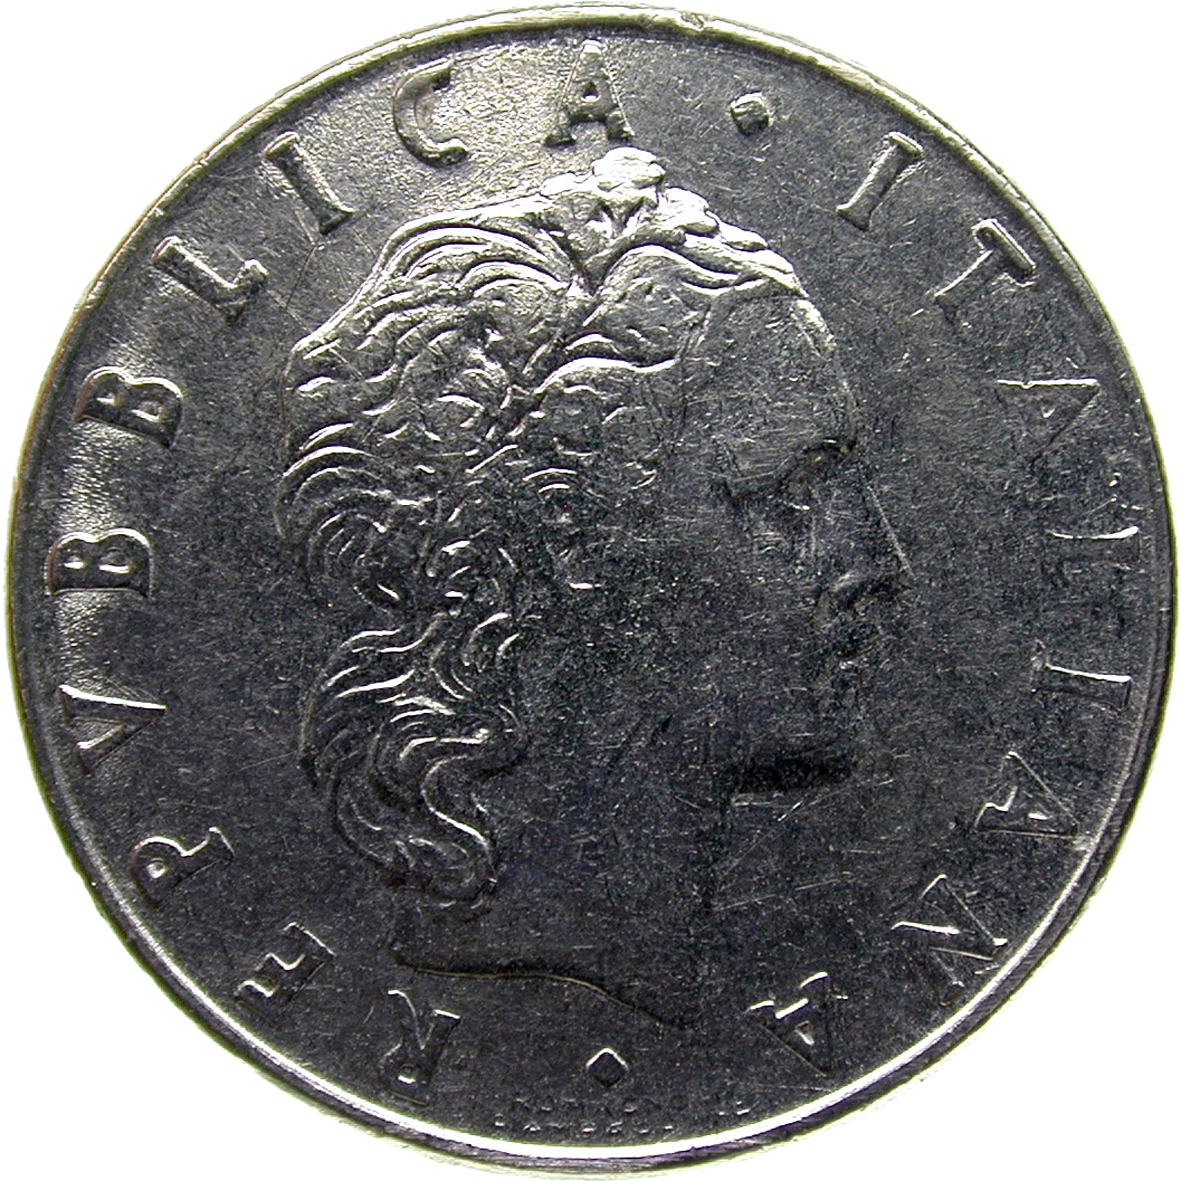 Republic of Italy, 50 Lire 1978 (obverse)